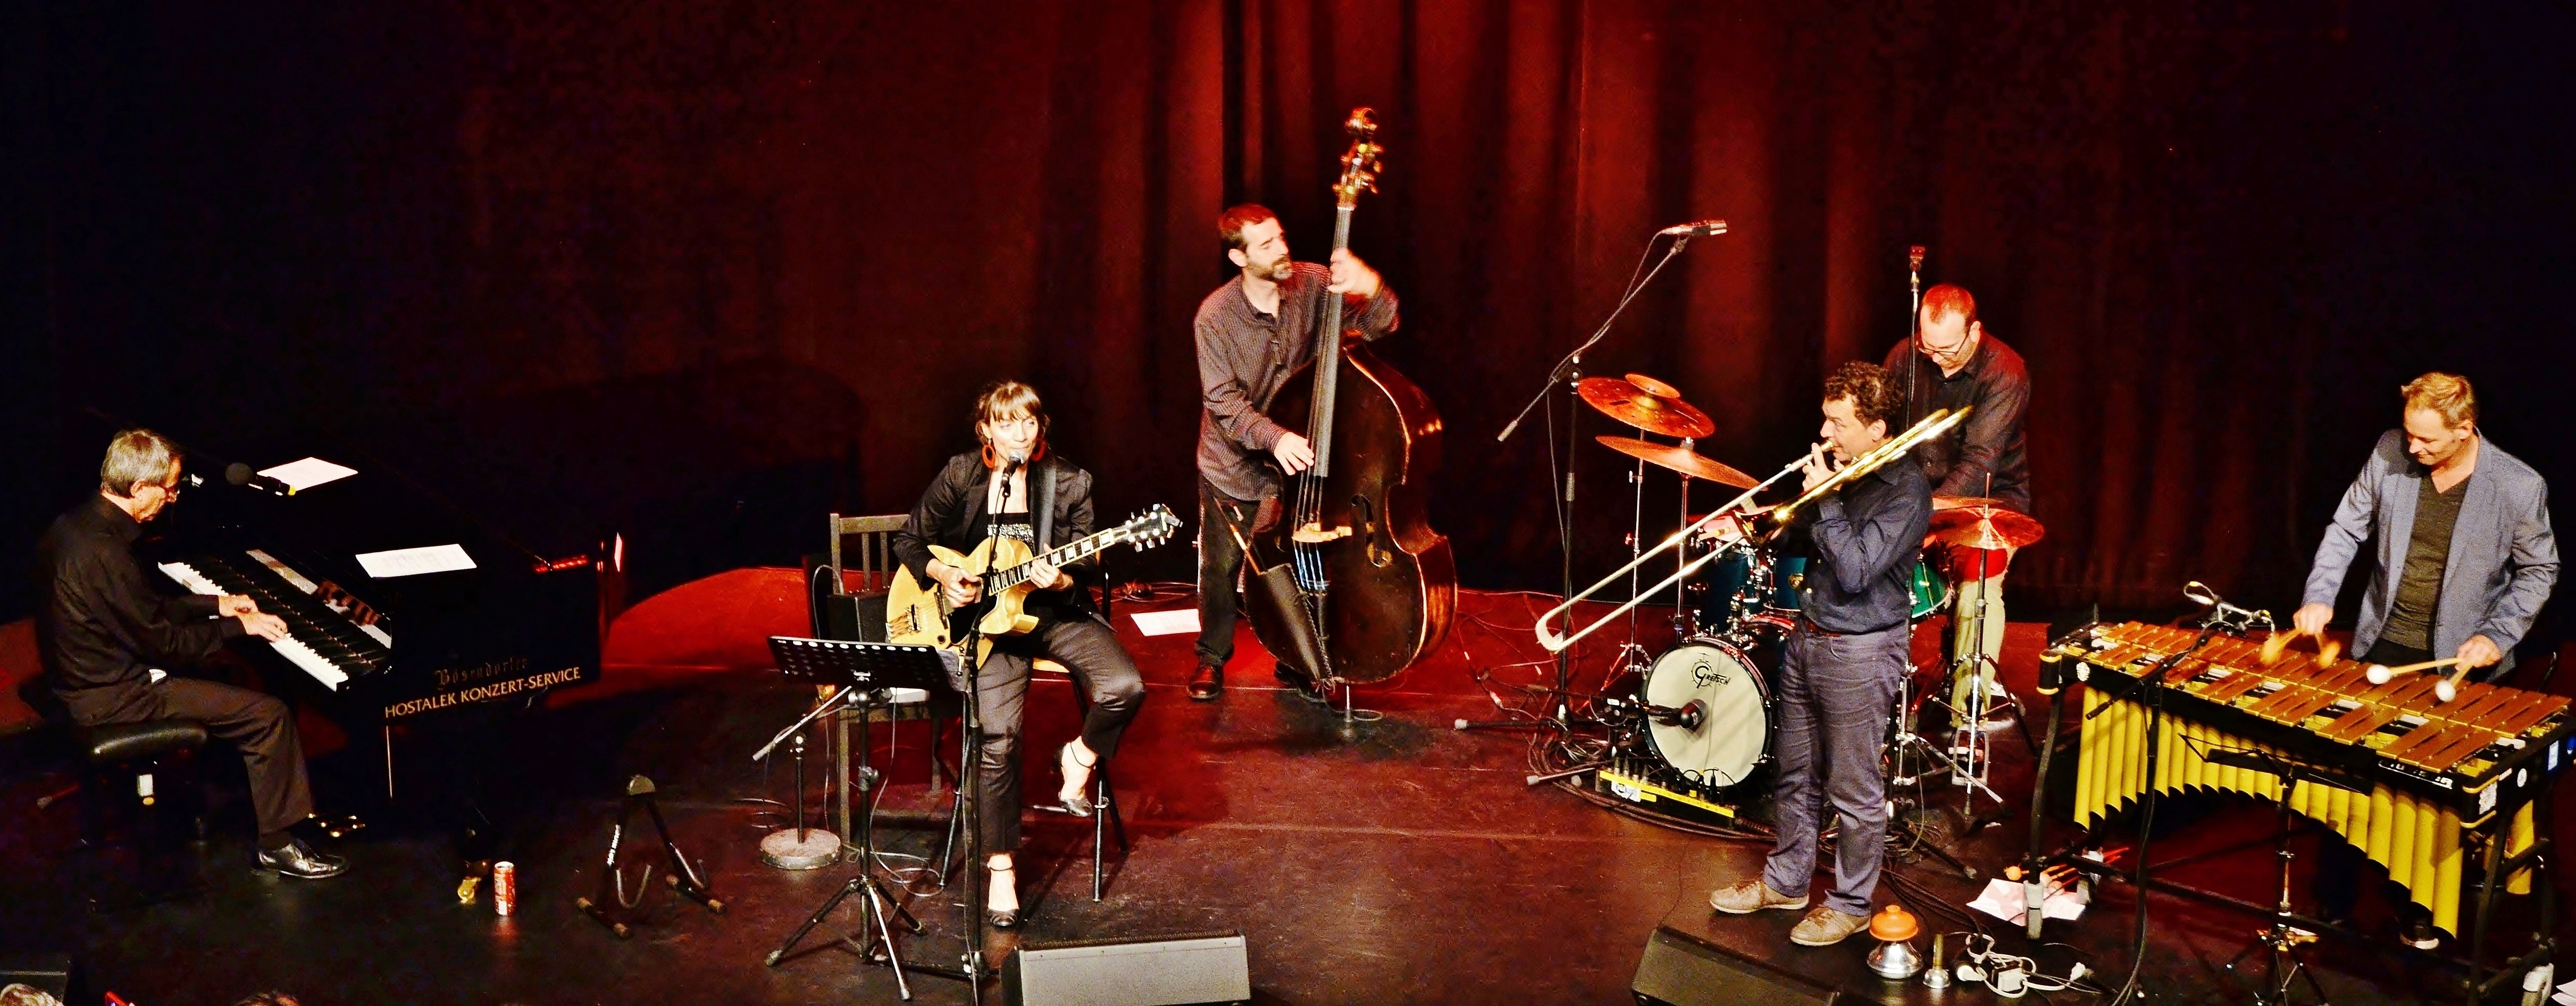 Jazz Jam Session Nr. 9 – Unforgettable Songs